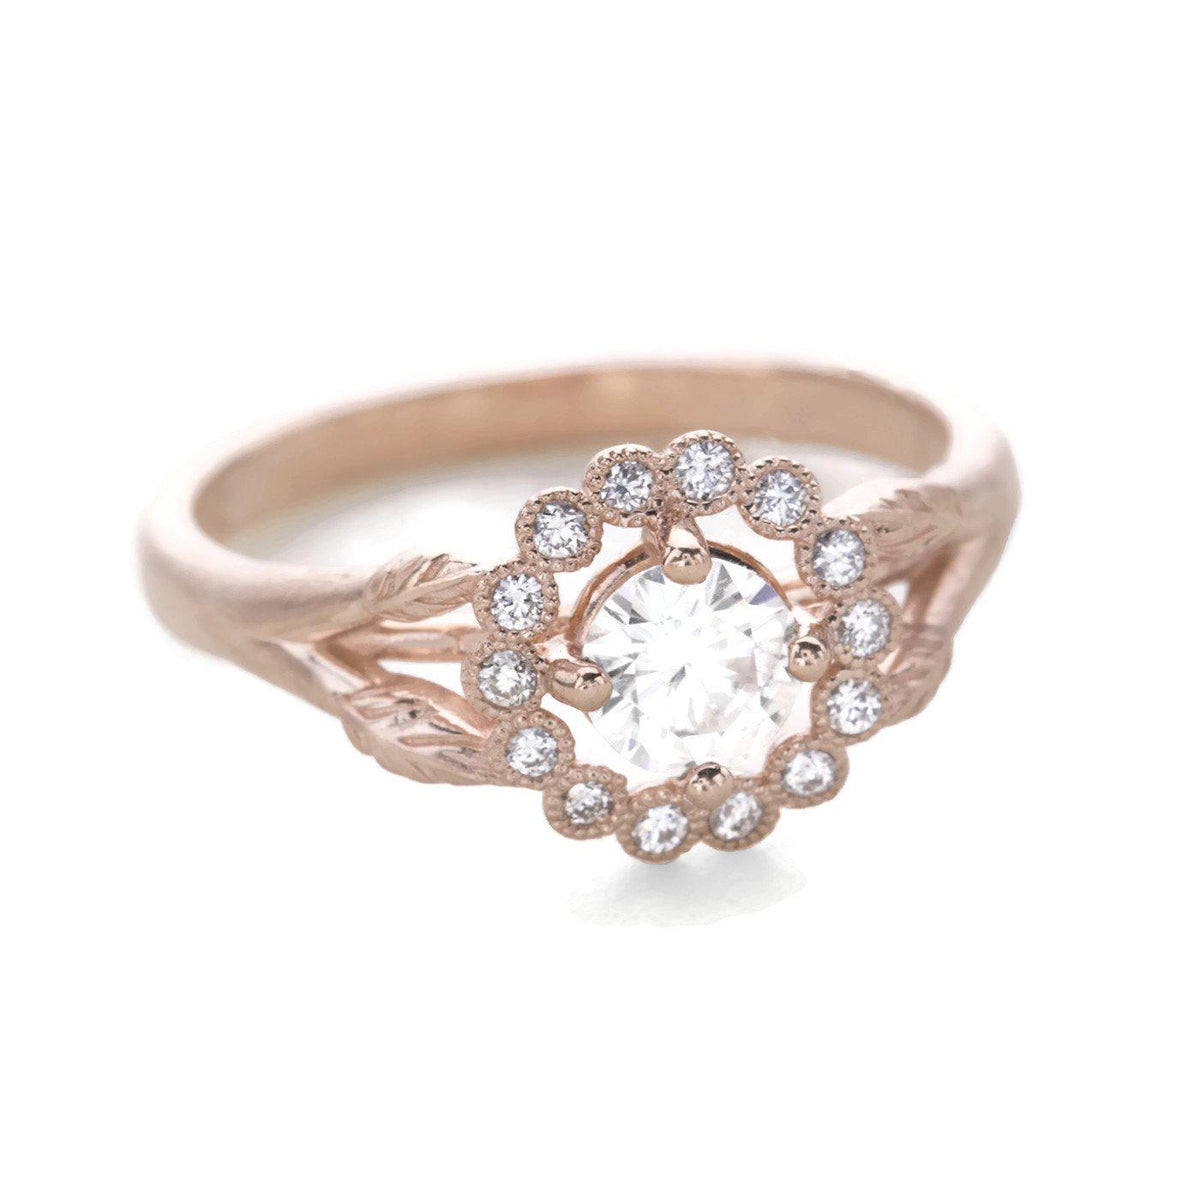 Gwendolyn Diamond Halo Ring